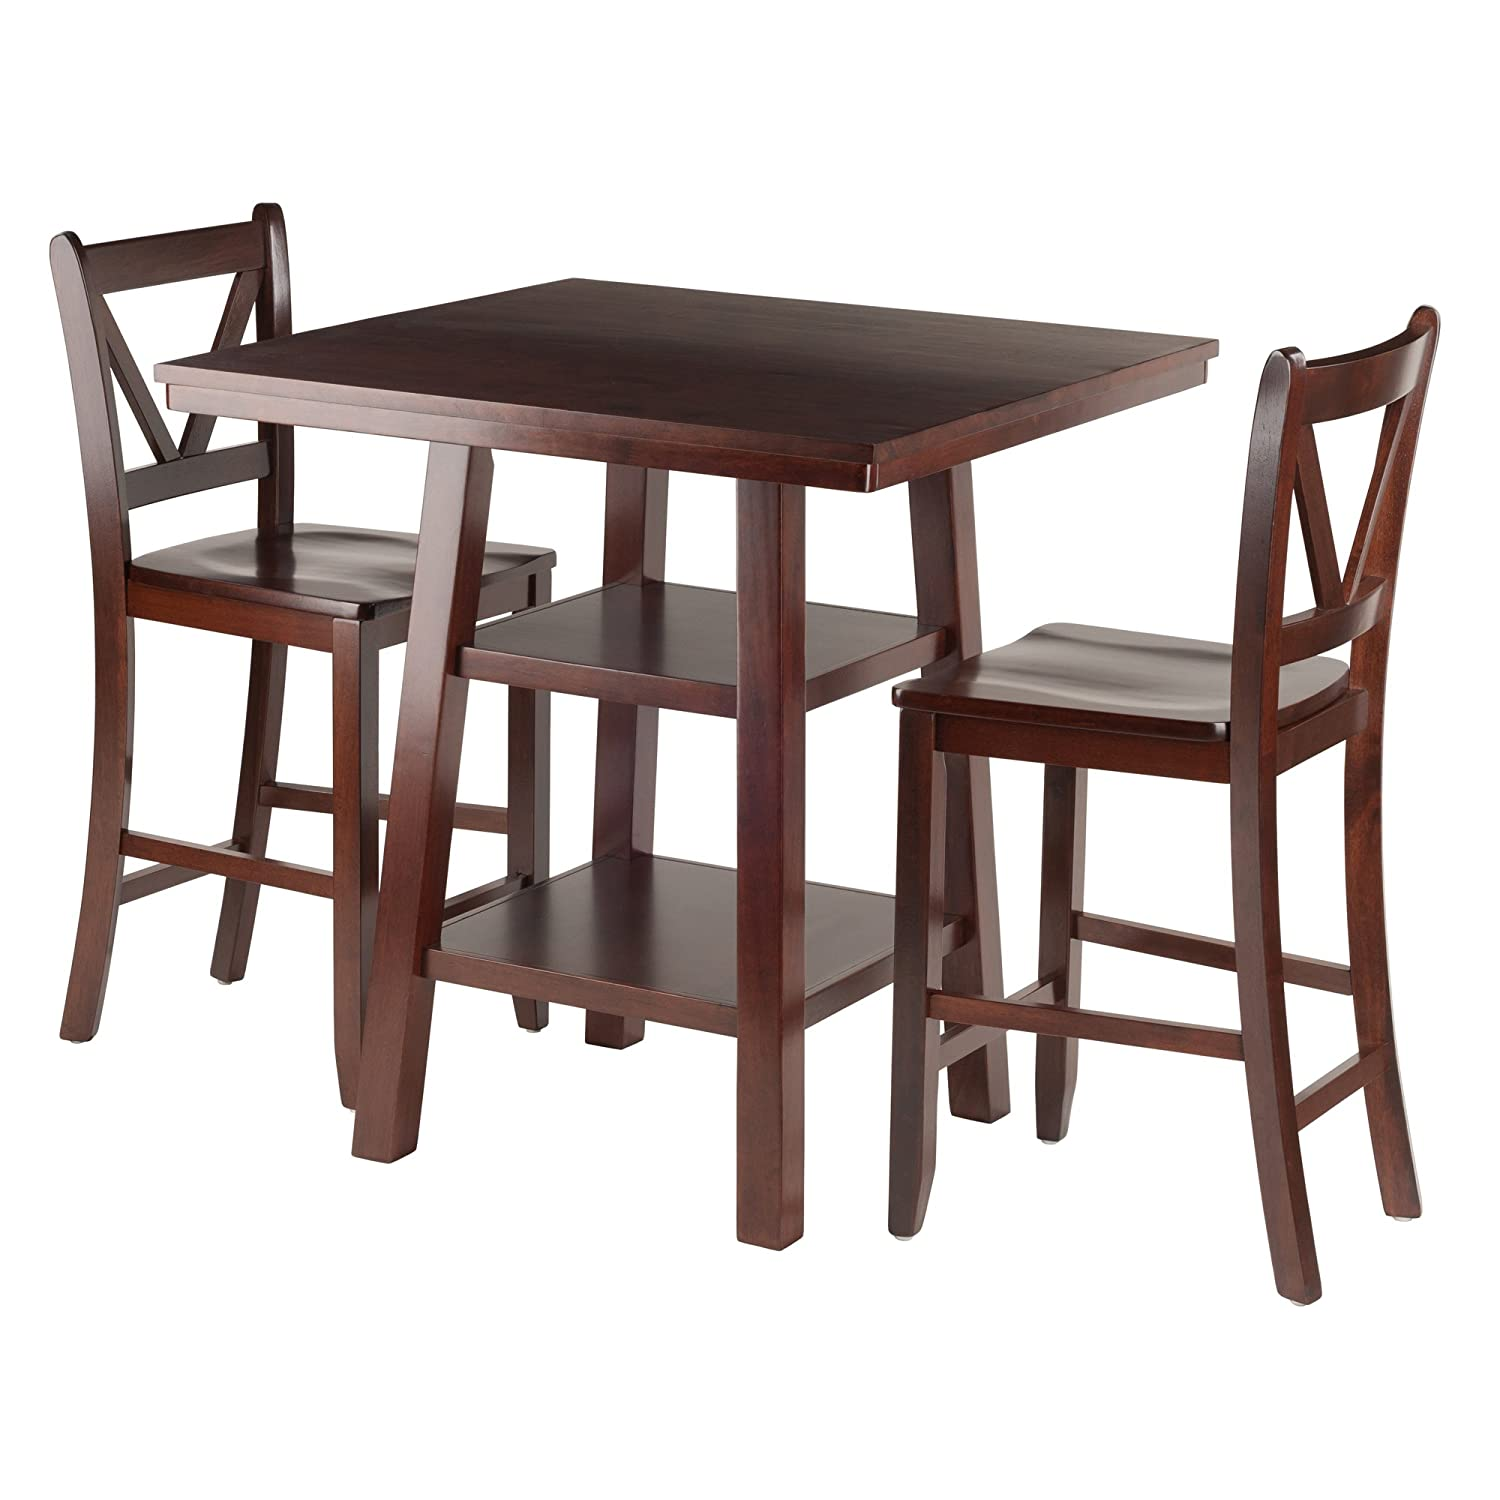 Amazon Winsome Wood Orlando 3 Piece Set High Table 2 Shelves With V Back Counter Stools Kitchen Dining